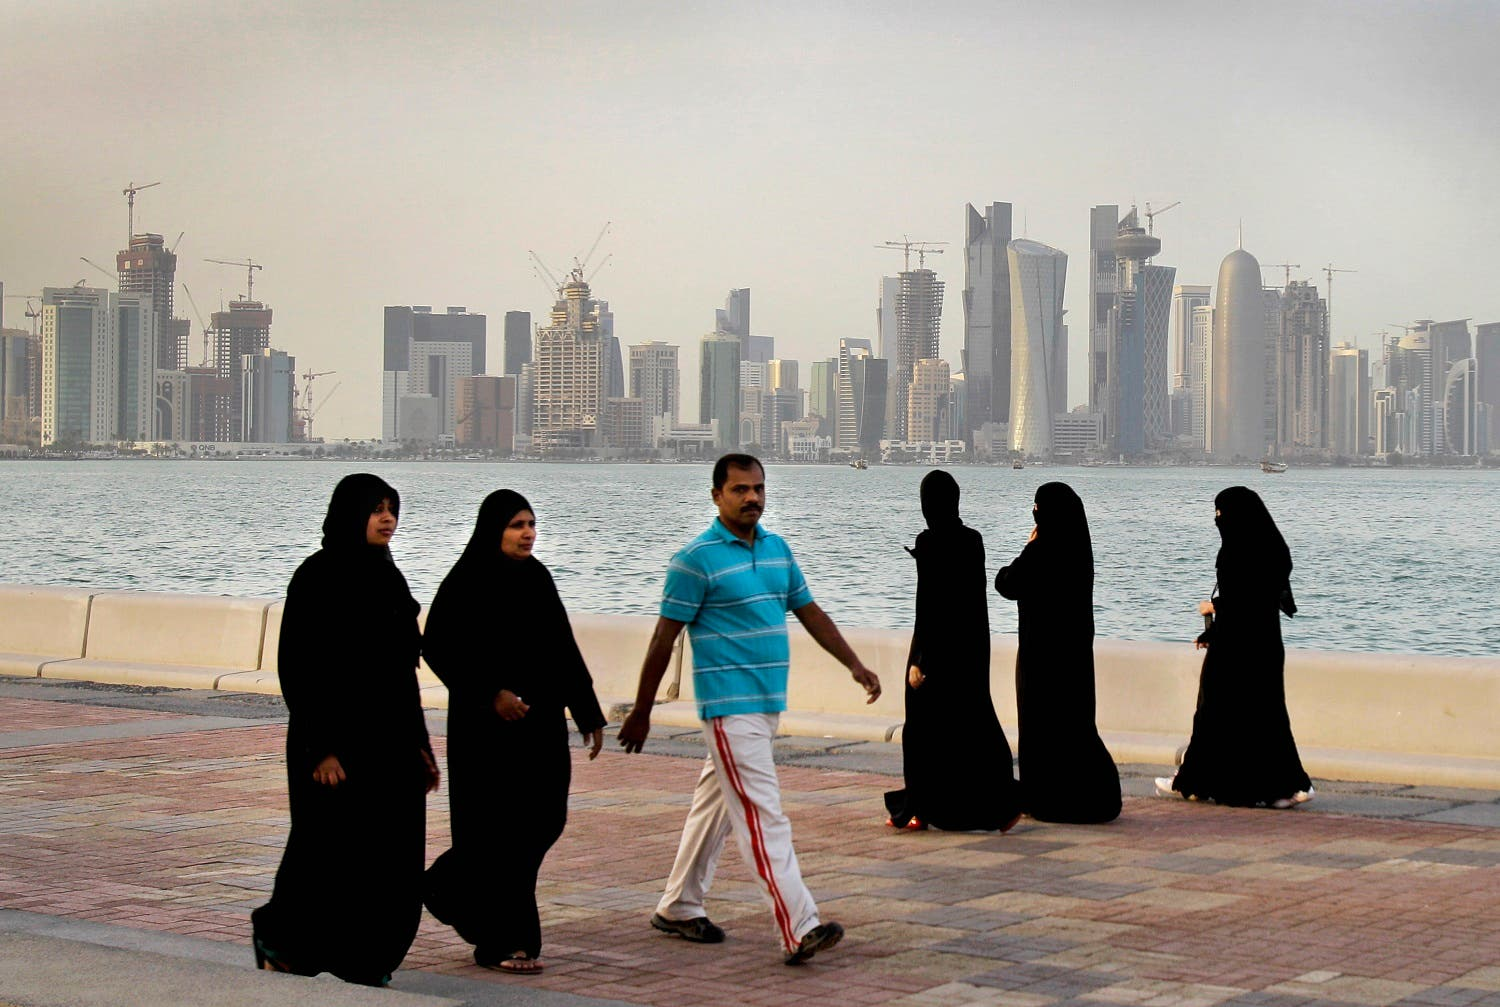 High-rise buildings of downtown Doha, photographed in the background, as women and a man walk by the sea in Doha, Qatar. (File photo: AP)